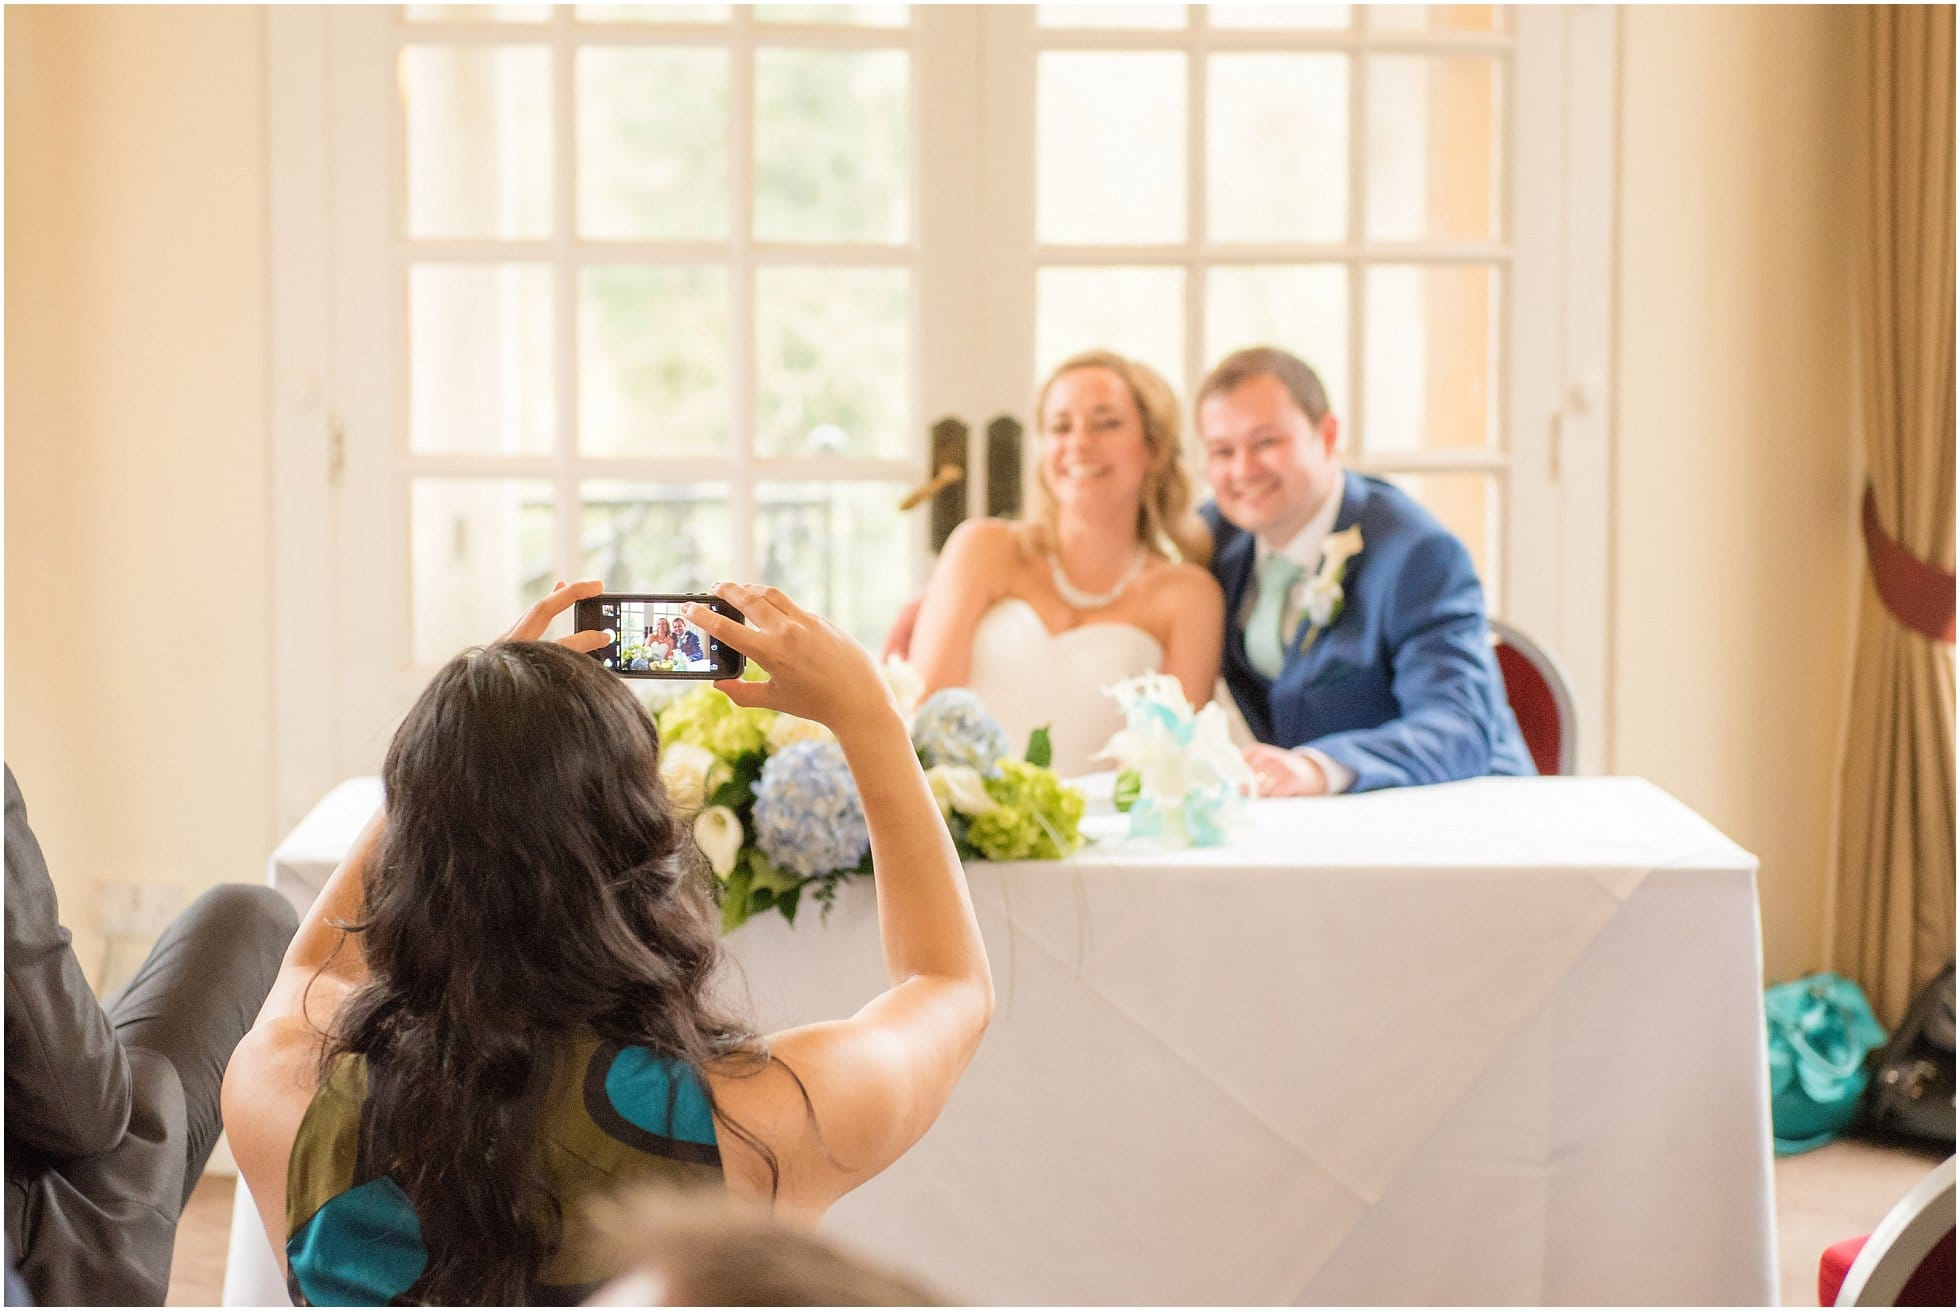 Guests photographing the bride and groom